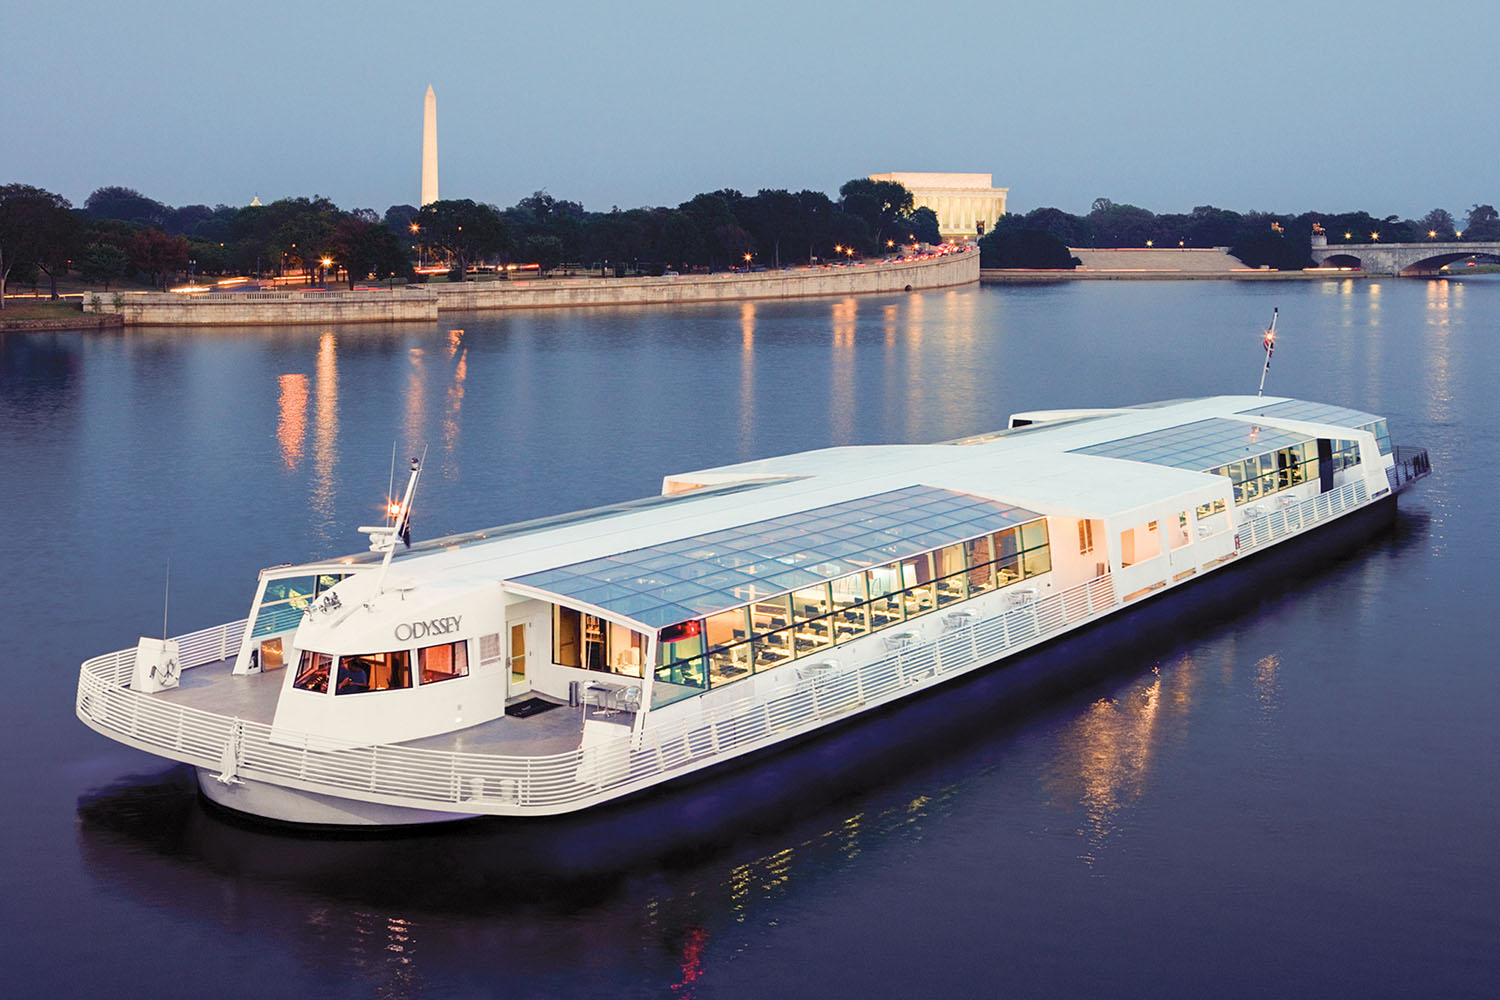 Odyssey III: Refurbishment On The Potomac